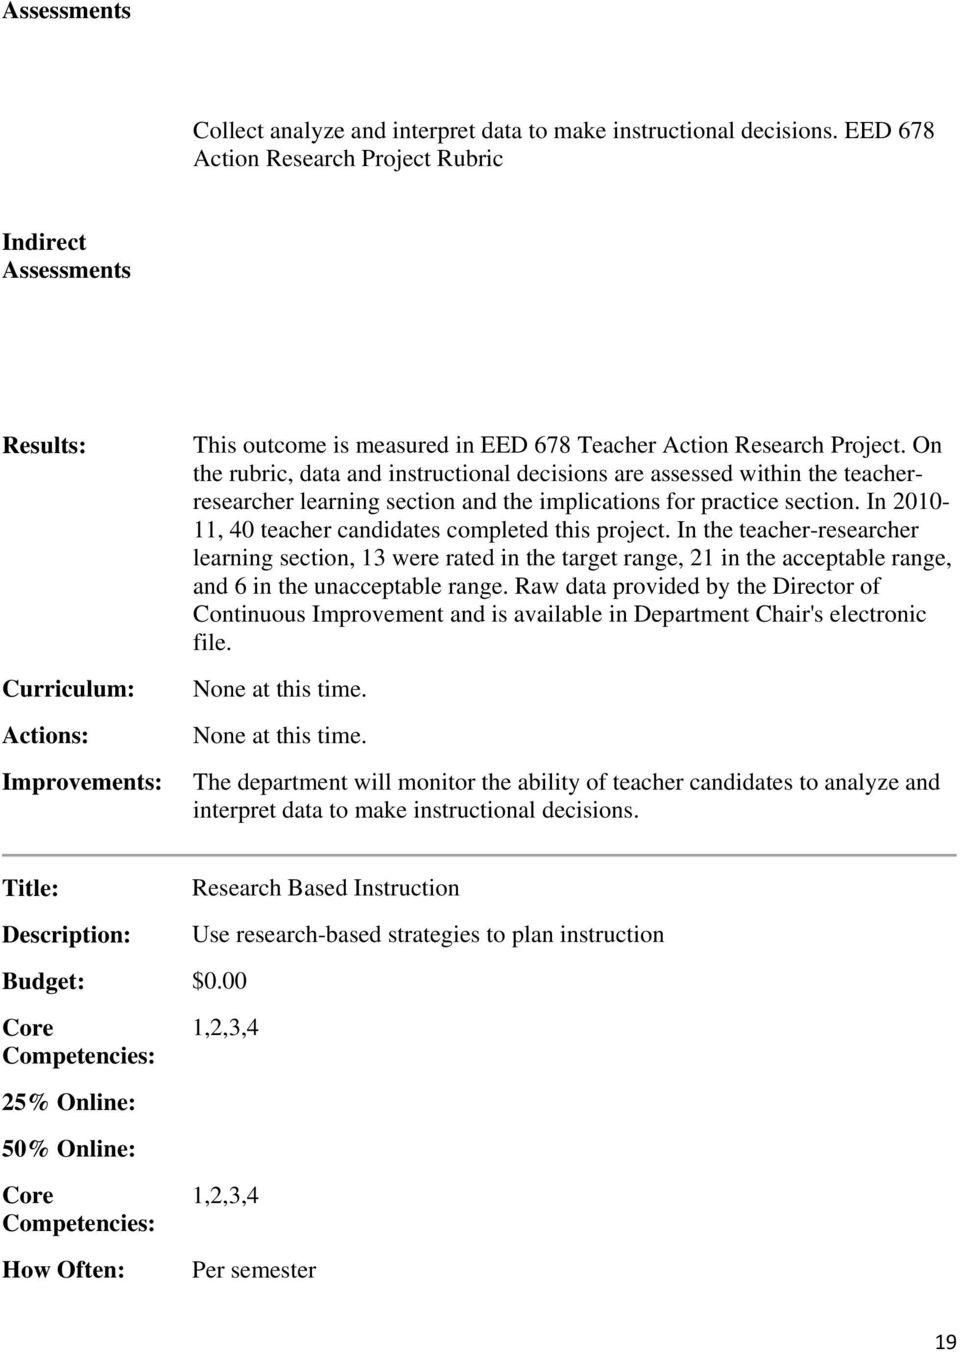 In 2010-11, 40 teacher candidates completed this project. In the teacher-researcher learning section, 13 were rated in the target range, 21 in the acceptable range, and 6 in the unacceptable range.